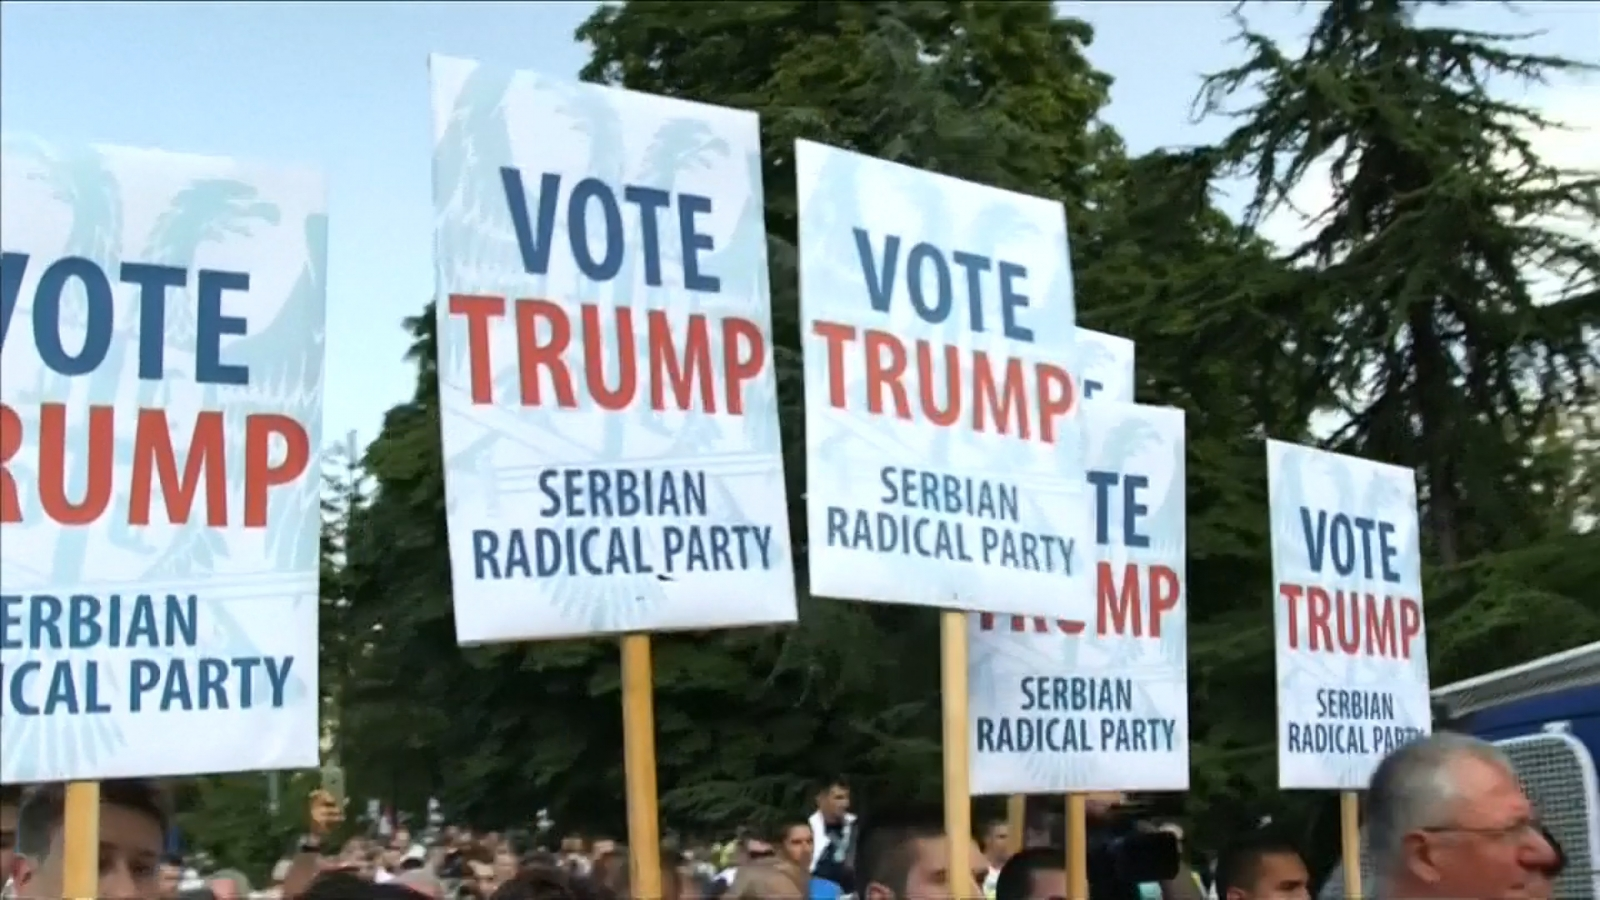 Serbia: Radical Party hold pro-Donald Trump rally as US Vice President Joe Biden visits Belgrade